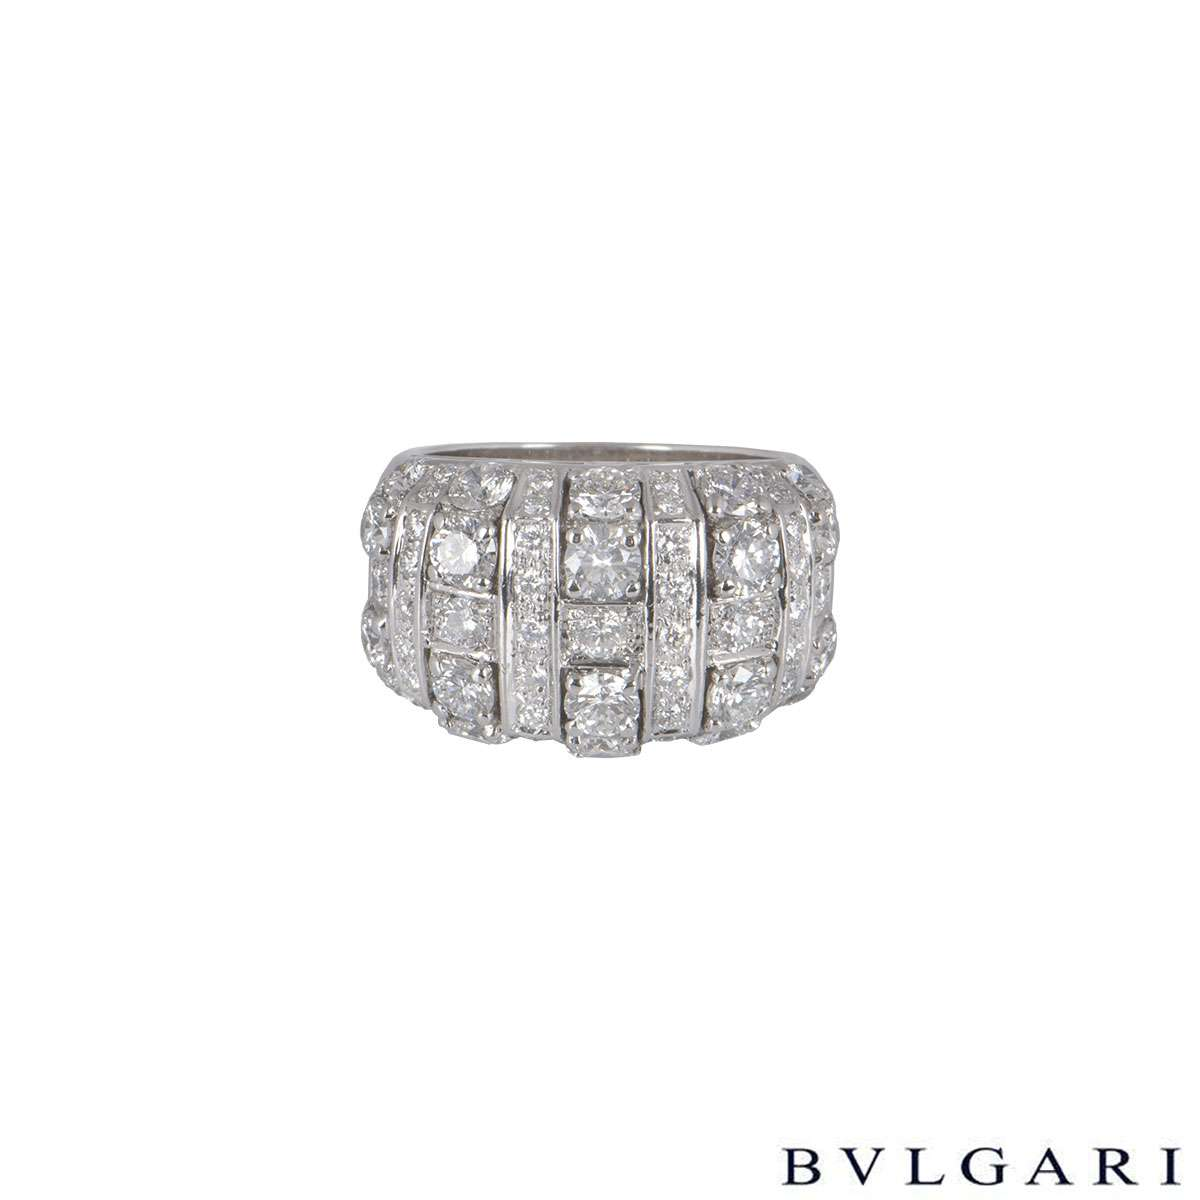 Bvlgari White Gold Diamond Ring